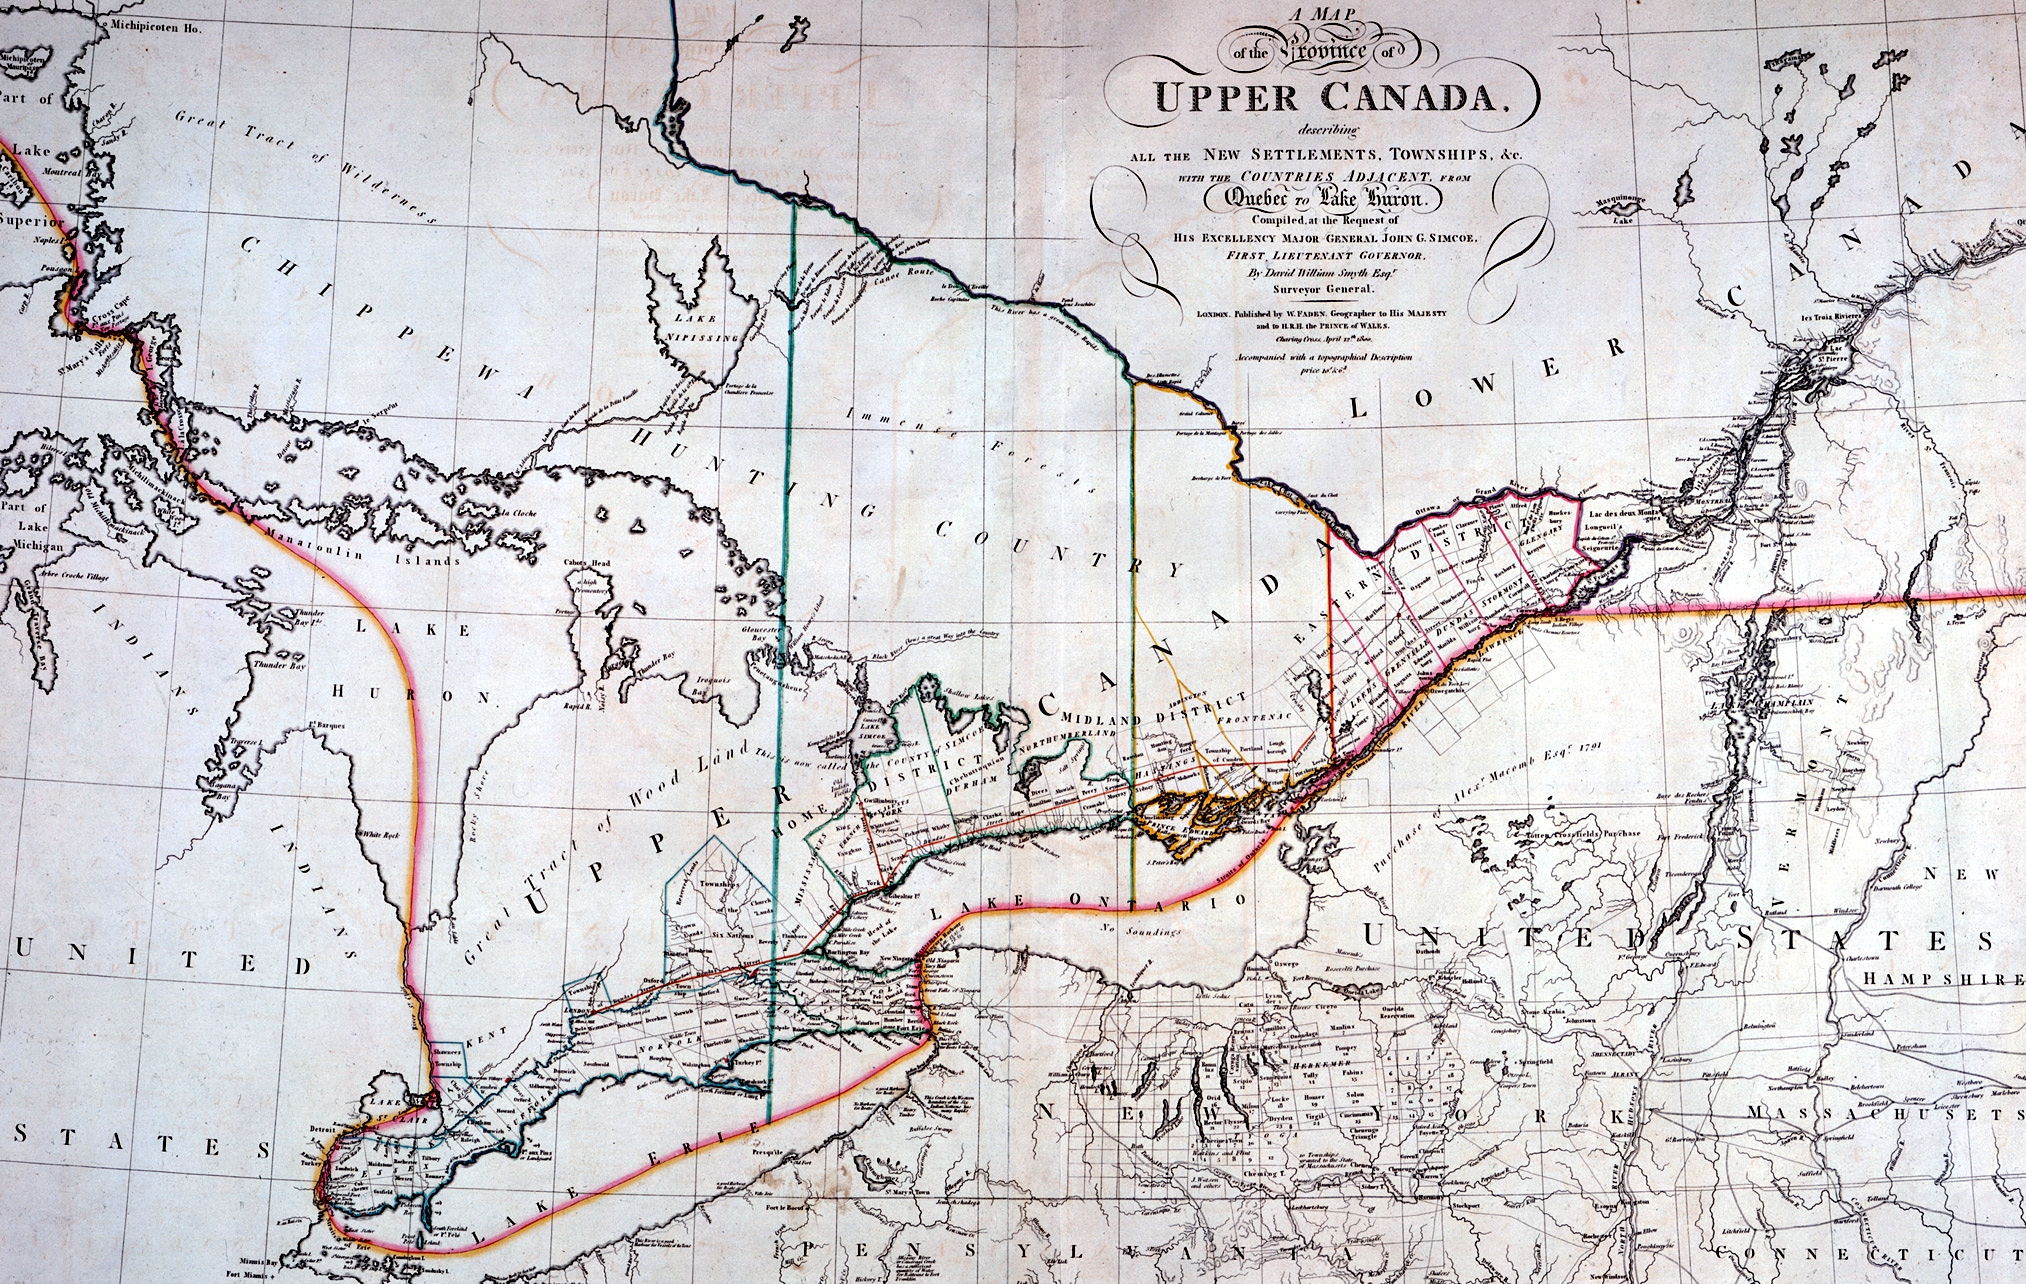 1800 map of Upper Canada (modern day Ontario) [2026x1284] [OS